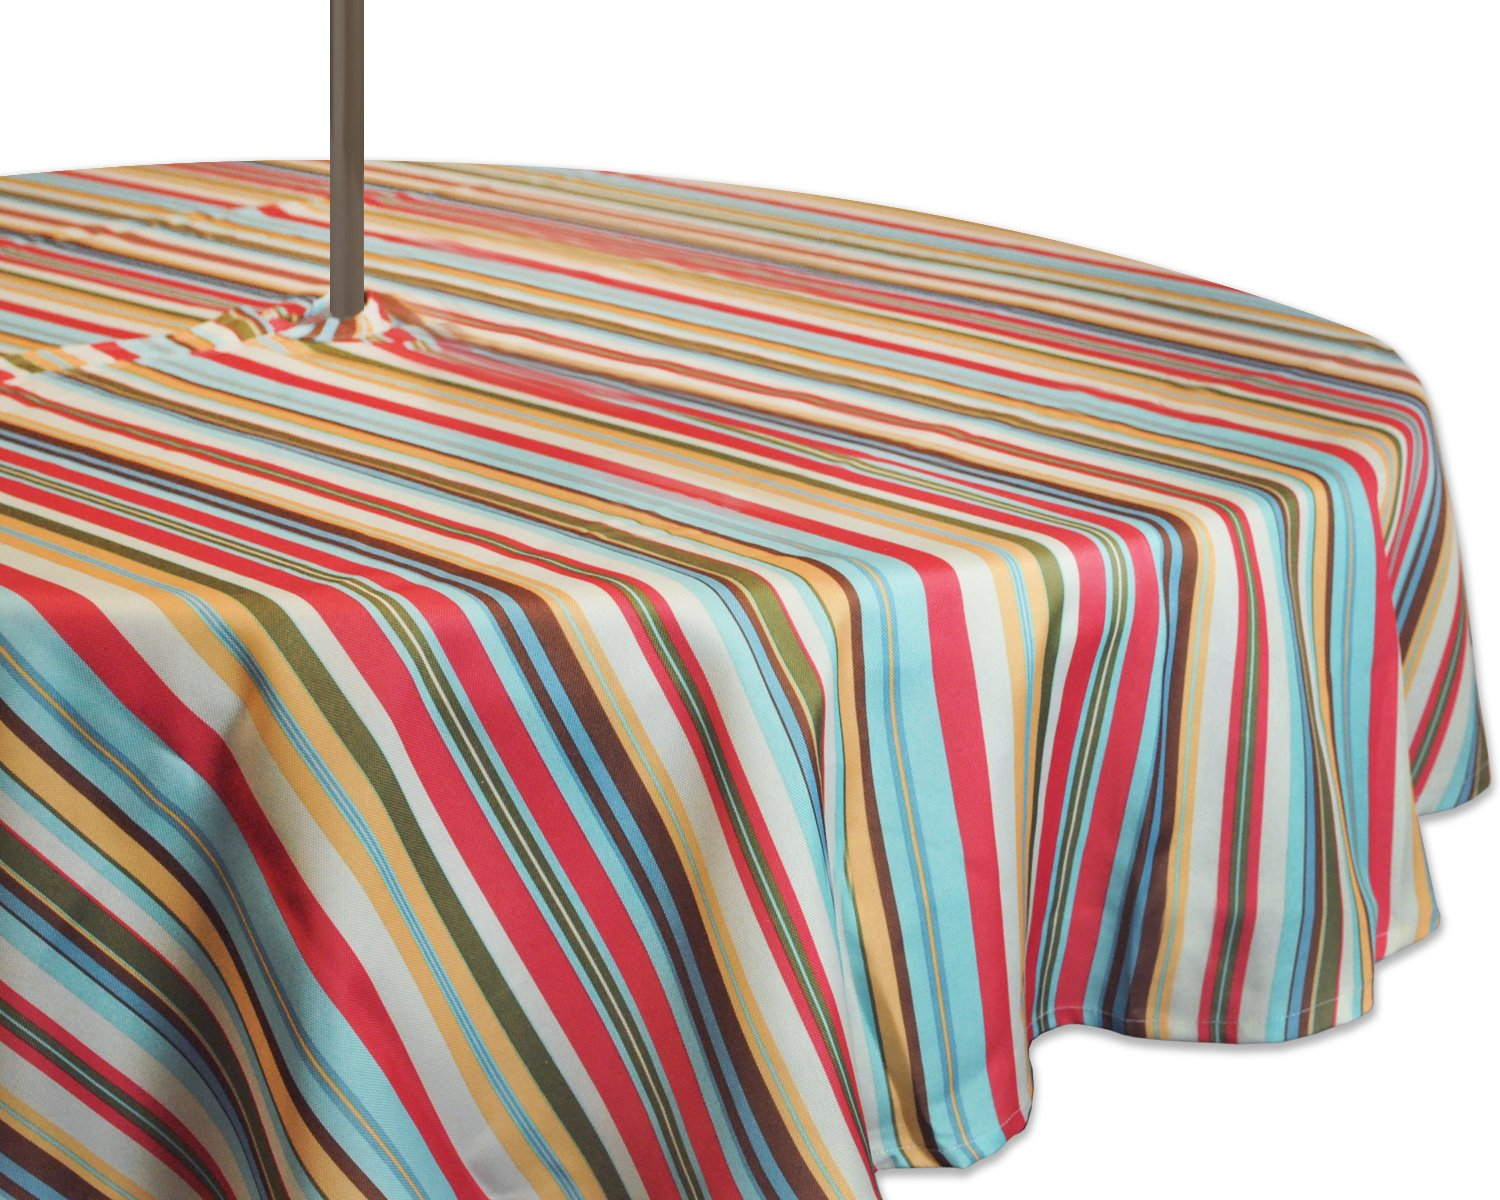 """DII 100% Polyester, Spill Proof, Machine Washable, Zipper Tablecloth for Outdoor Use with Umbrella Covered Tables, 52"""" Round, Warm Summer Stripe, Seats 4 People, w"""